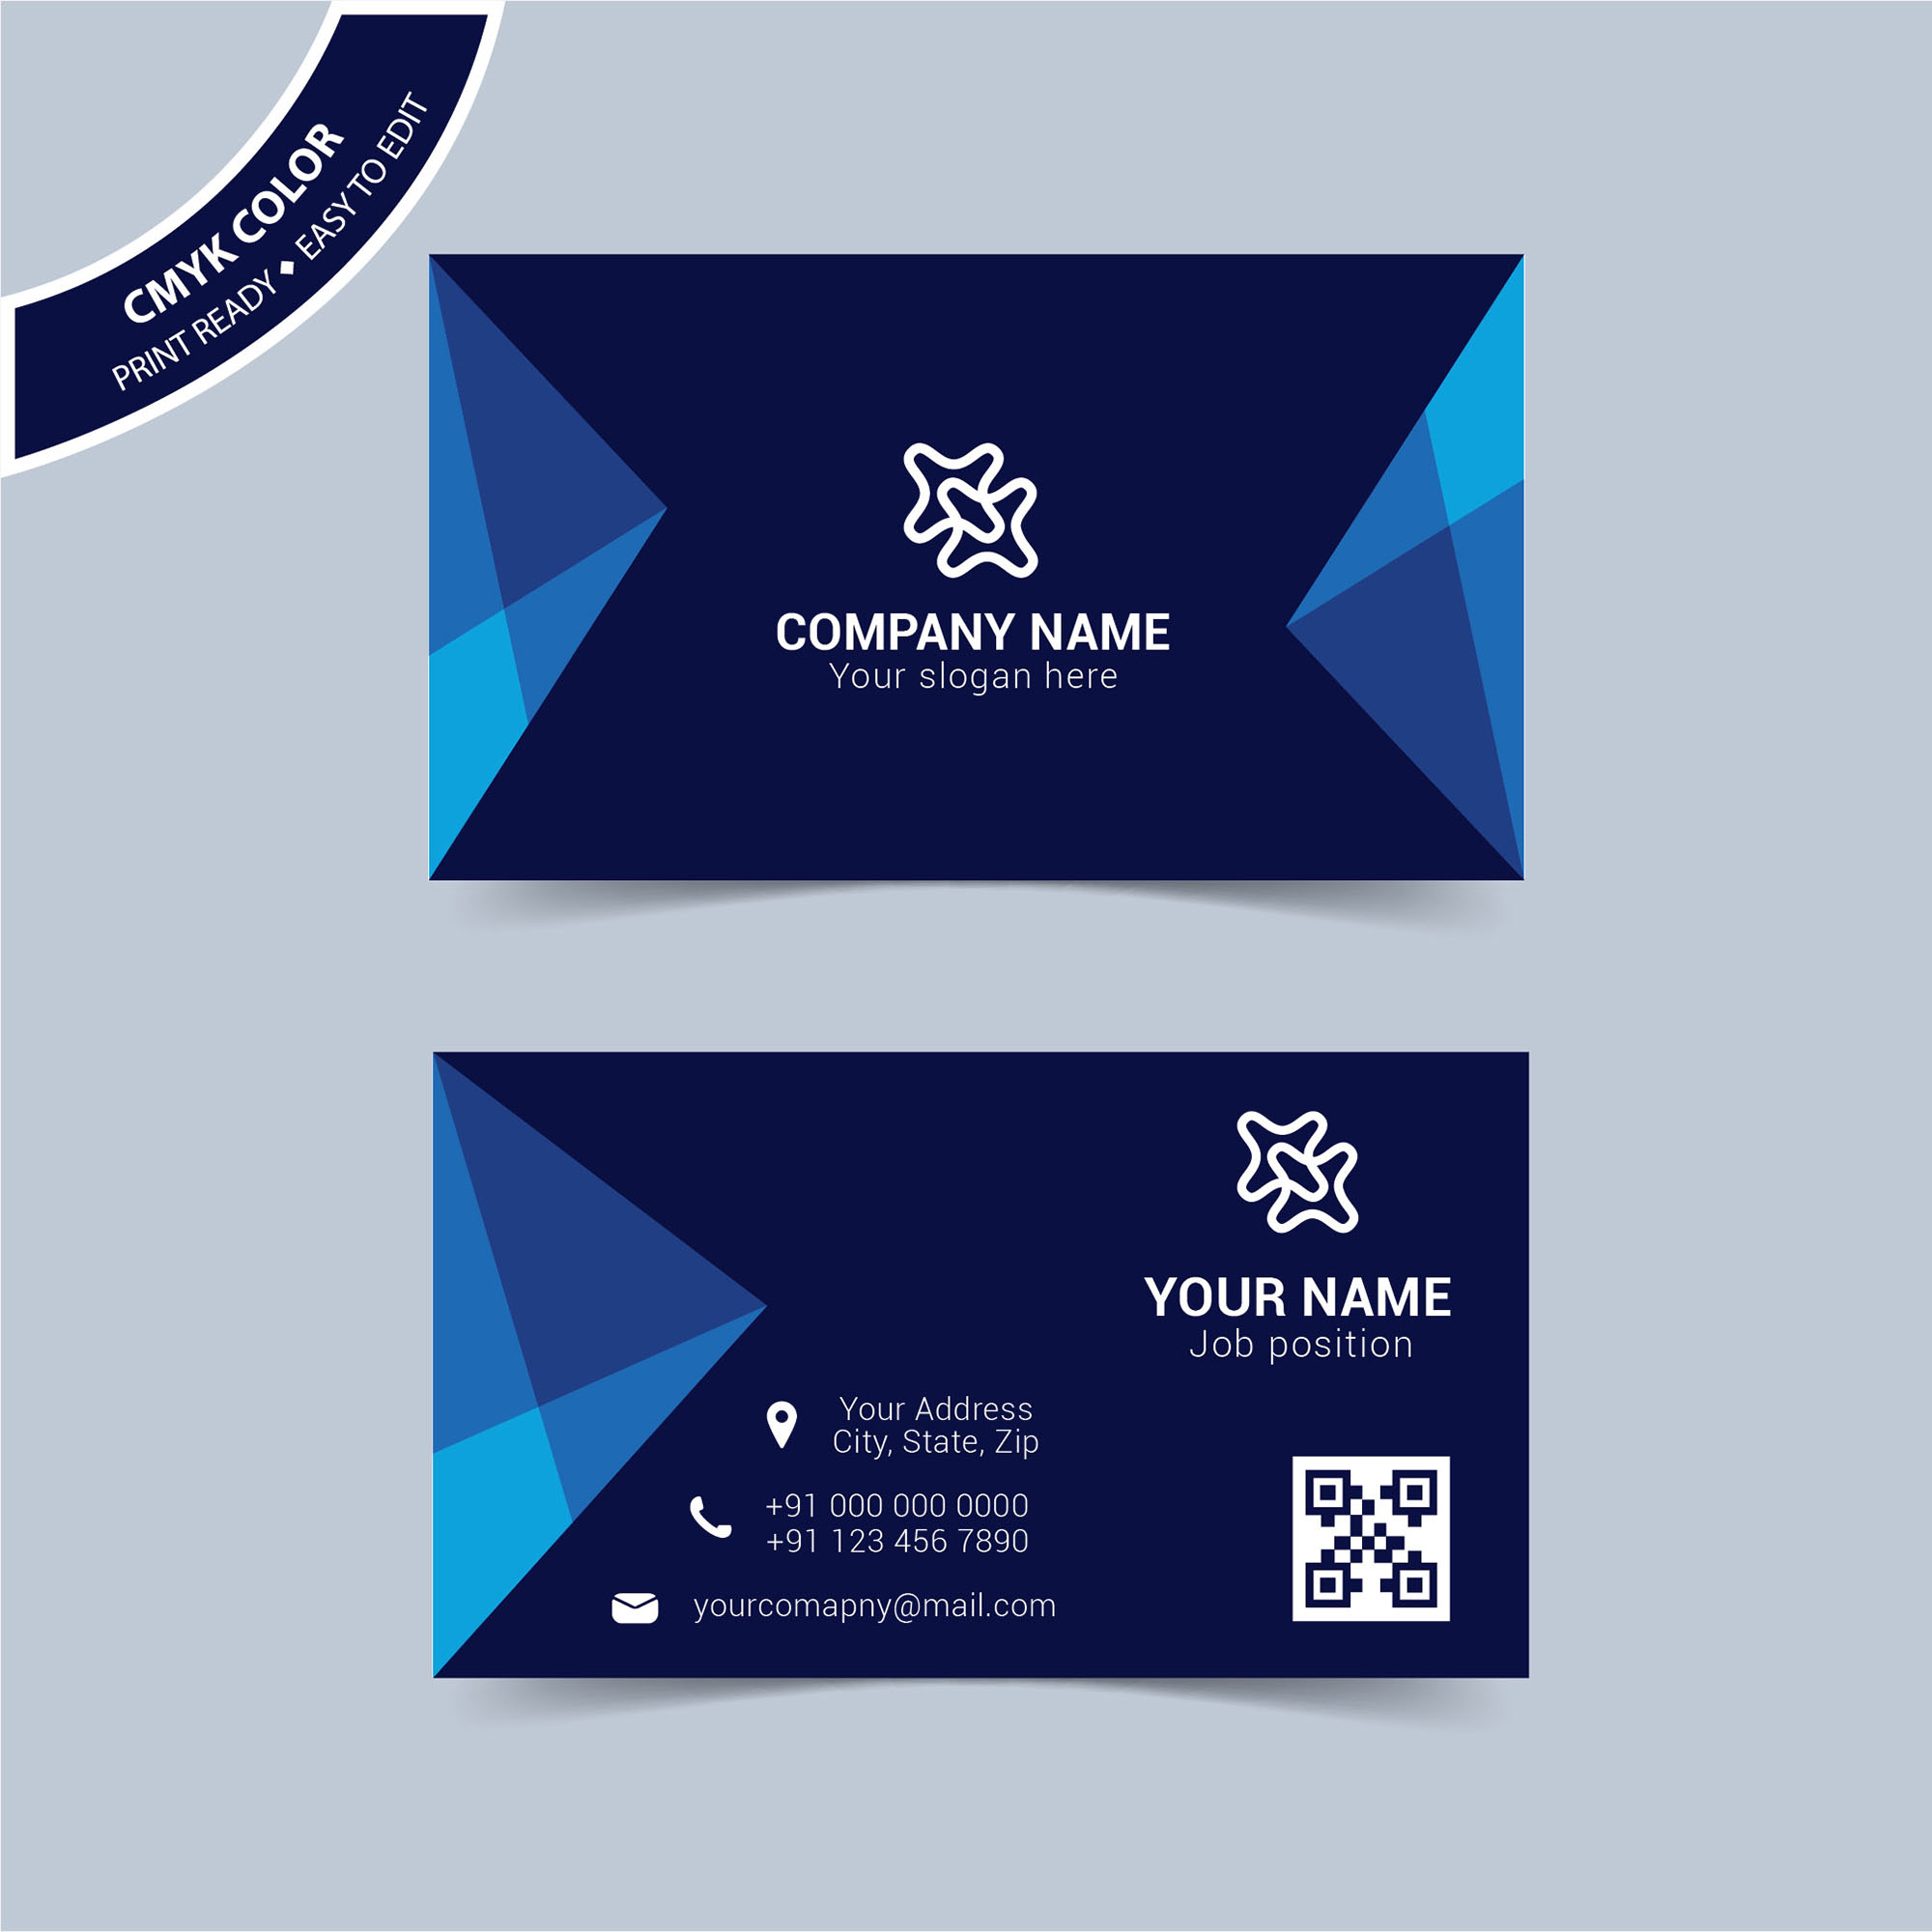 Modern blue business card template free download wisxi business card business cards business card design business card template design templates accmission Choice Image